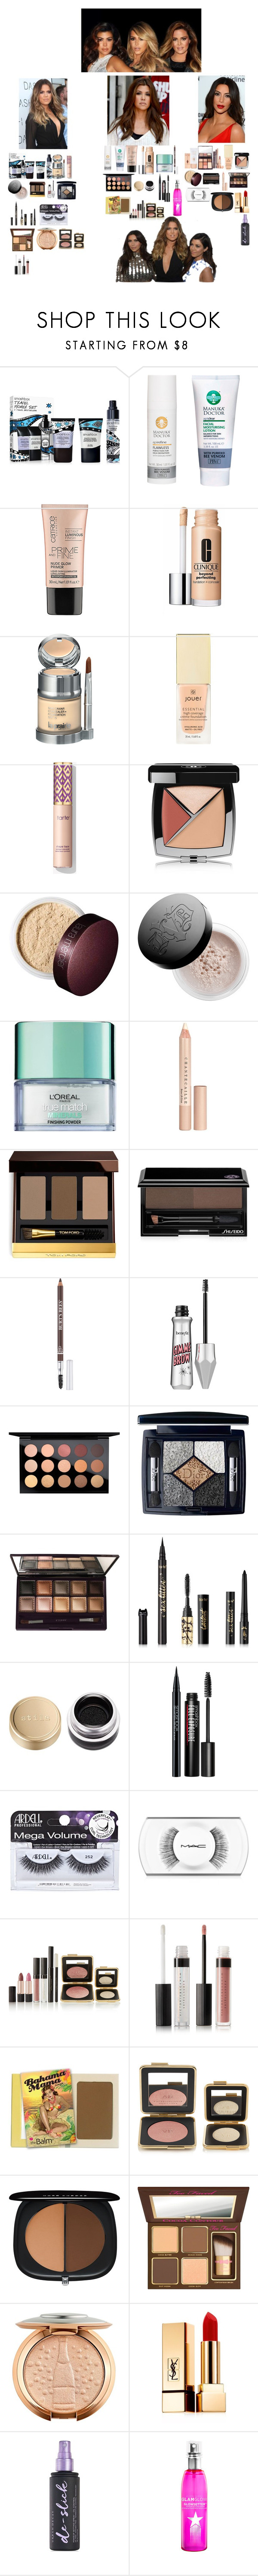 """Kim, Kourtney And Khloe Inspired Makeup"" by hayleyjacksonuk ❤ liked on Polyvore featuring beauty, By Terry, Smashbox, Charlotte Tilbury, Manuka Doctor, Clinique, La Prairie, Jouer, Chanel and Laura Mercier"